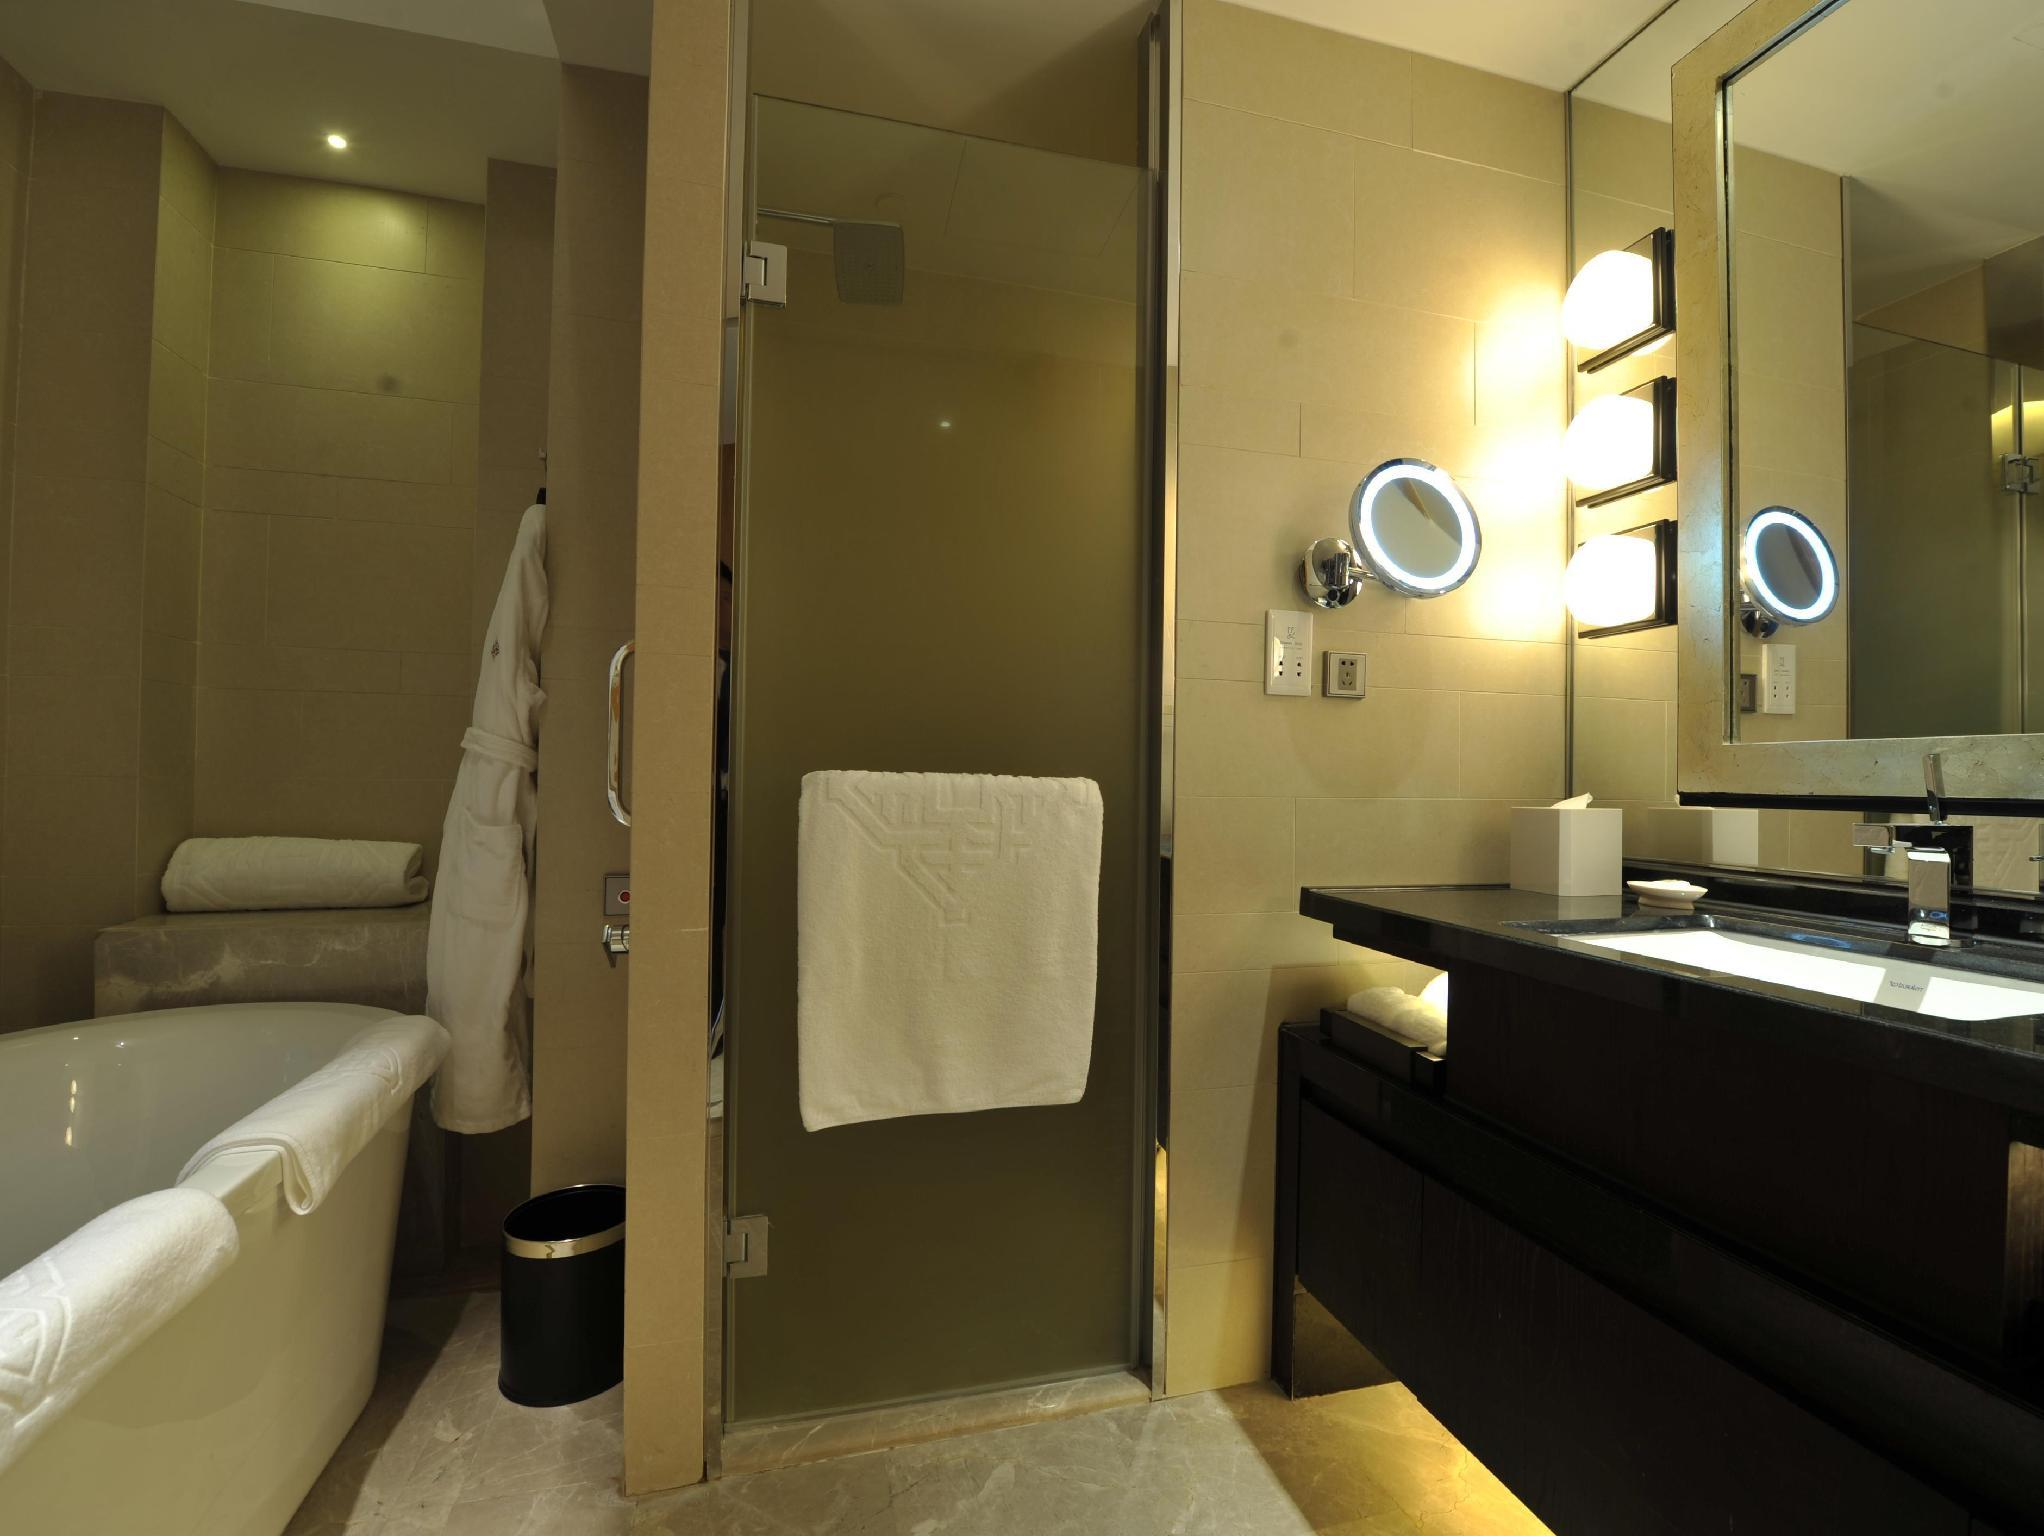 Стая Jinling Eкзекютив с 2 единични легла – Asia Pacific Tower (Jinling Executive Room Twin Beds - Asia Pacific Tower)